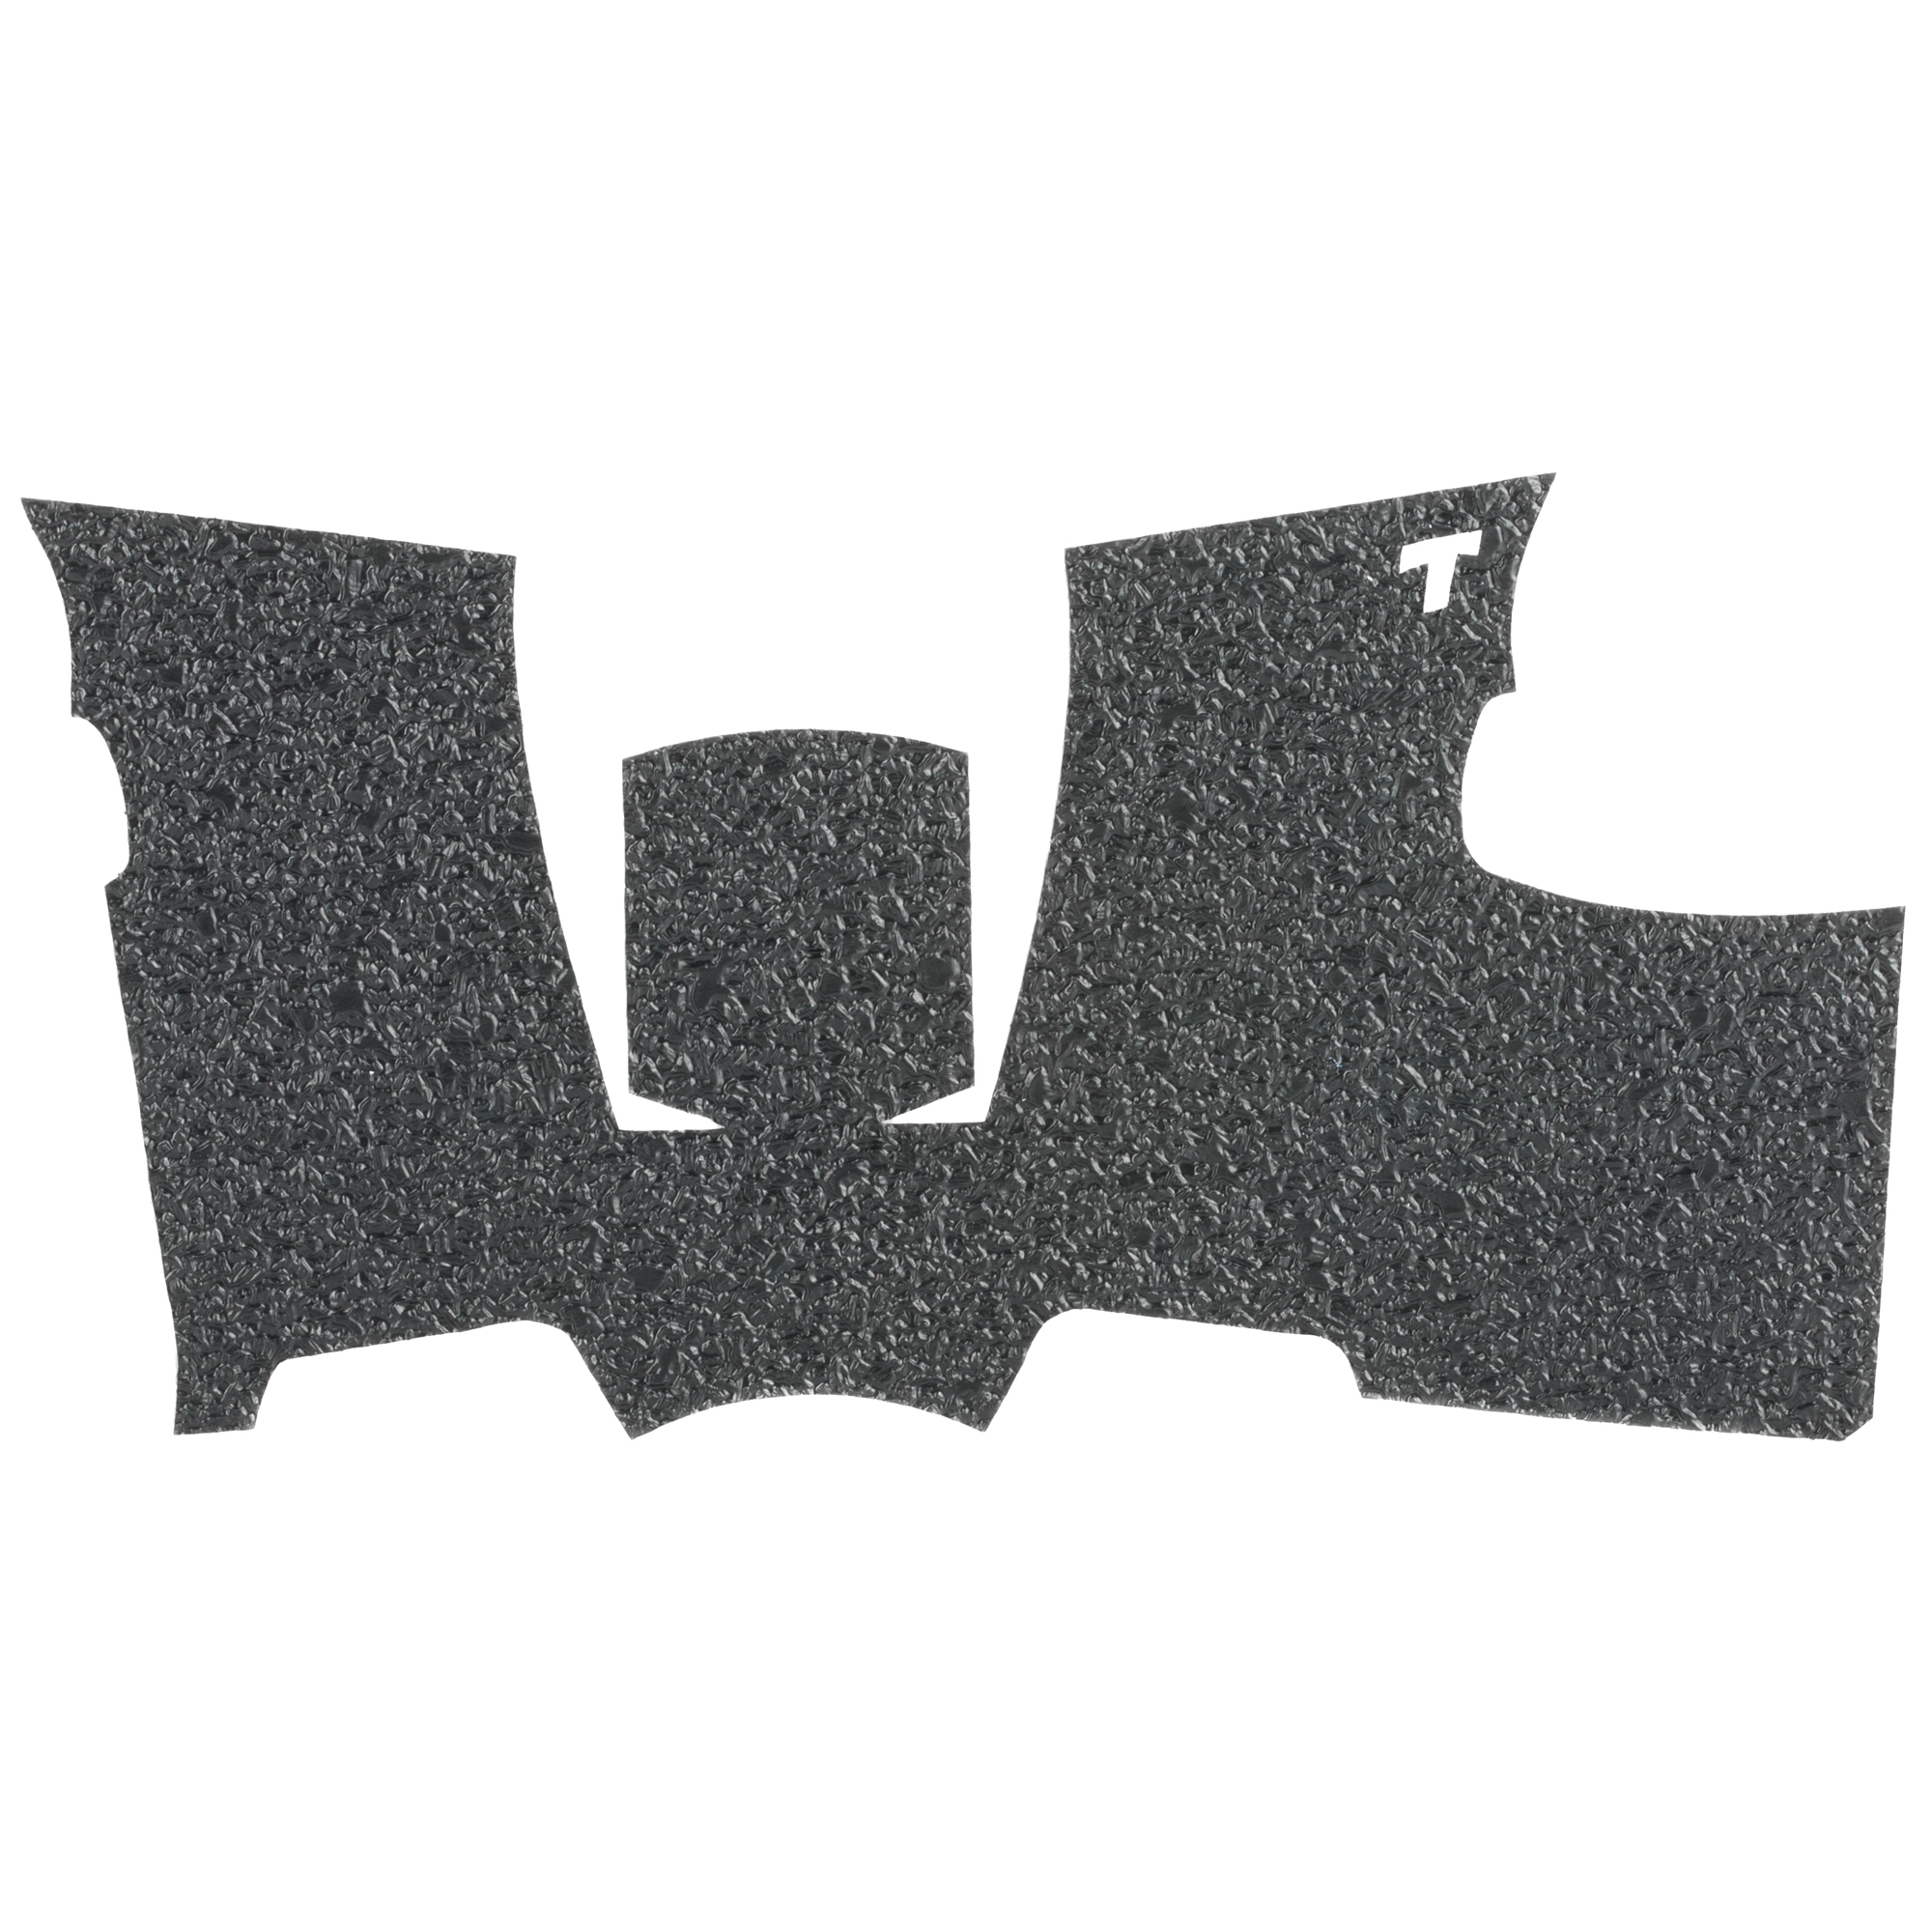 """This rubber rear wrap grip for the Sig Sauer P365 offers full side panel coverage including the thumb rest area"""" full coverage under the trigger guard"""" and full coverage on the backstrap."""